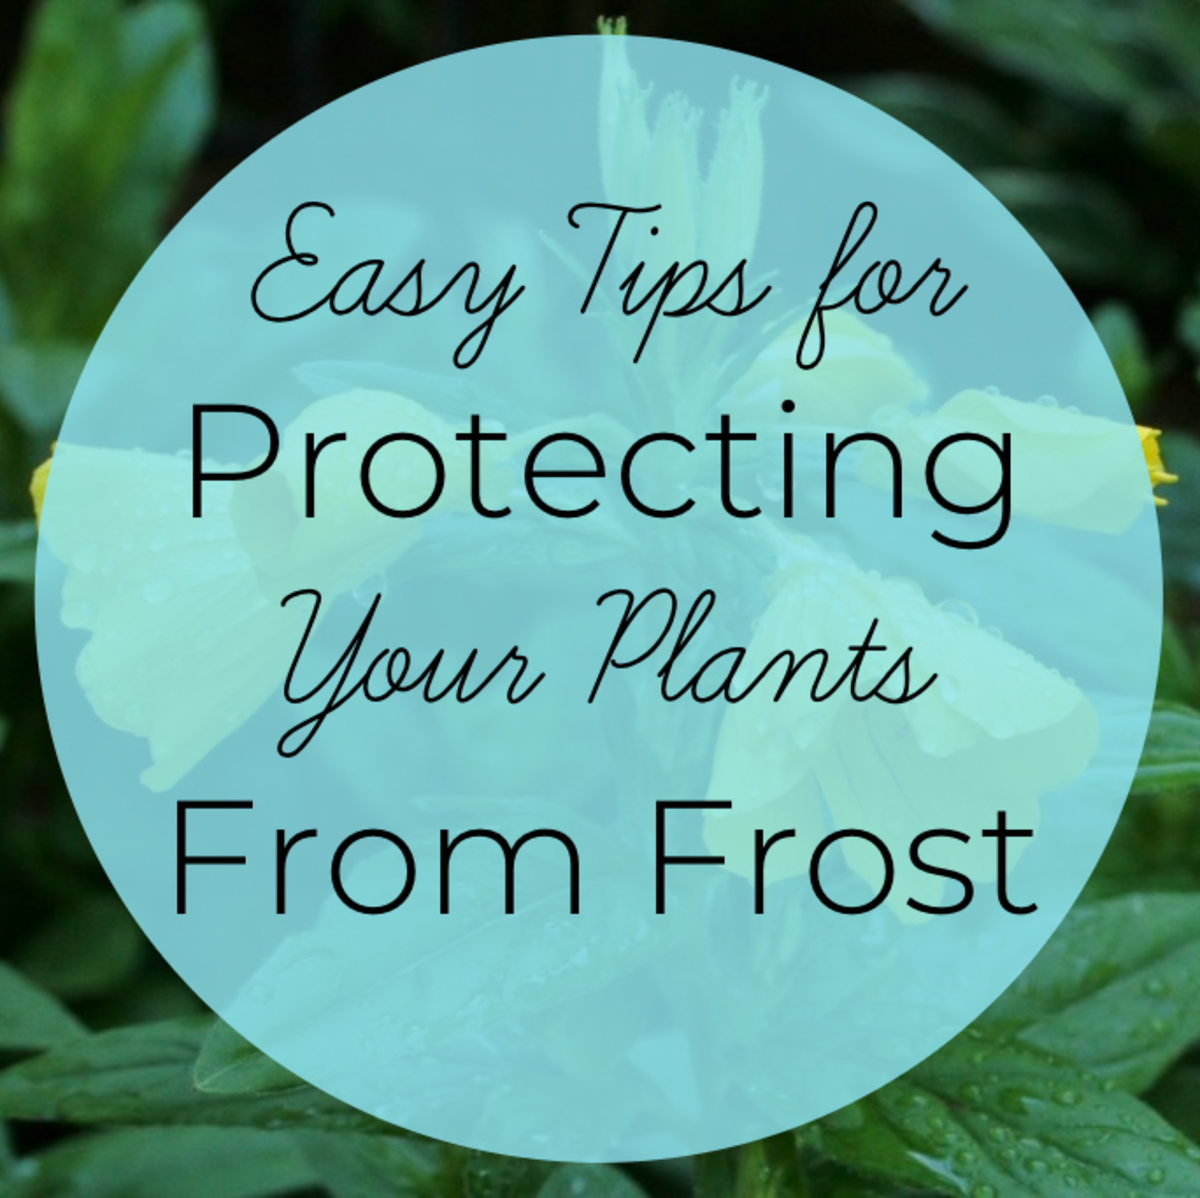 From watering before a cold snap to using cloths to cover your plants, this article will share with you 10 easy ways to help protect your plants from the ravages of frost.